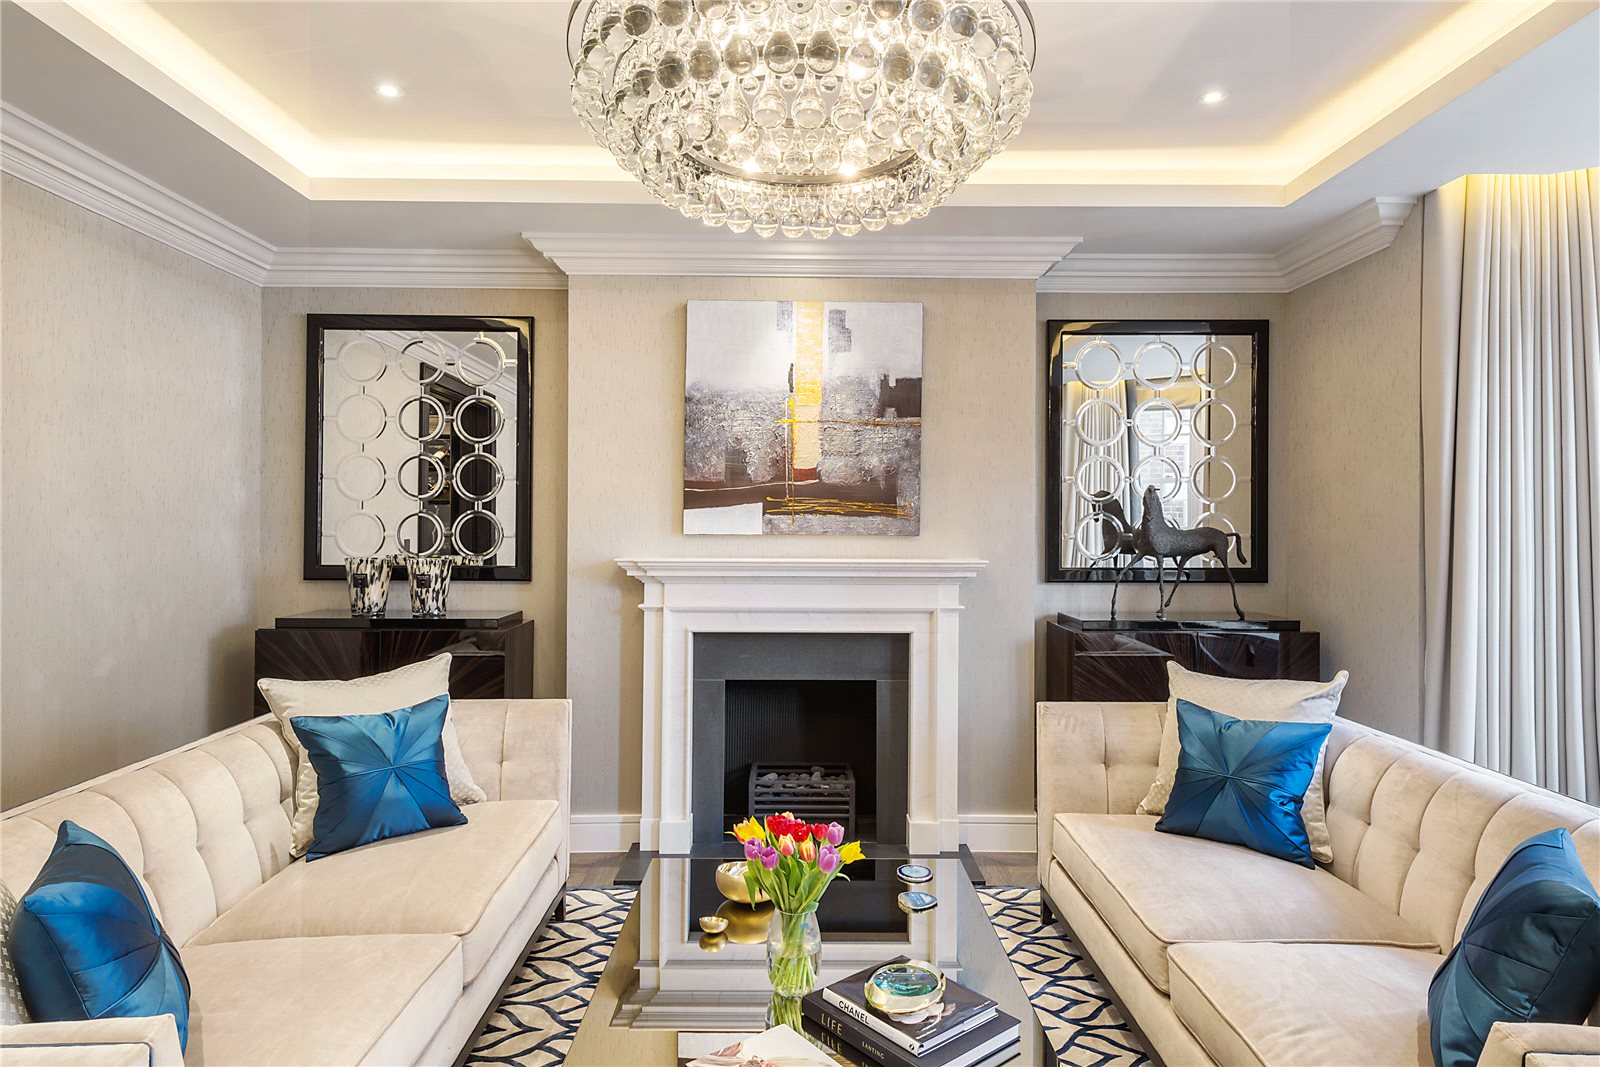 Single Family Home for Sale at Tite Street, Chelsea, London, SW3 Chelsea, London, England